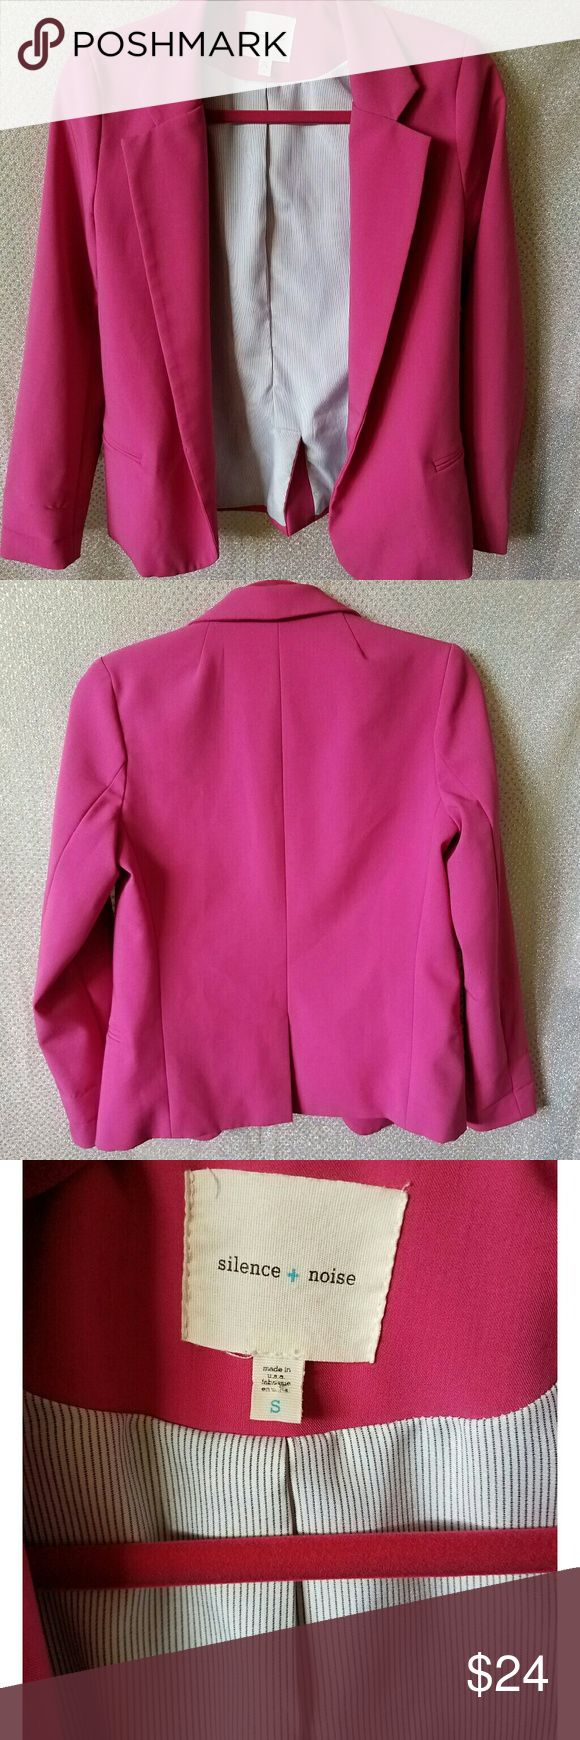 """Urban Outfitters silence & noise hot pink blazer Urban Outfitters silence & noise hot pink blazer, size small, polyester, 2 front illusion pockets.  Measurements: Shoulder to shoulder 16"""" Armpit to armpit 17"""" Sleeve 23"""" Length 23"""" Urban Outfitters Jackets & Coats Blazers"""